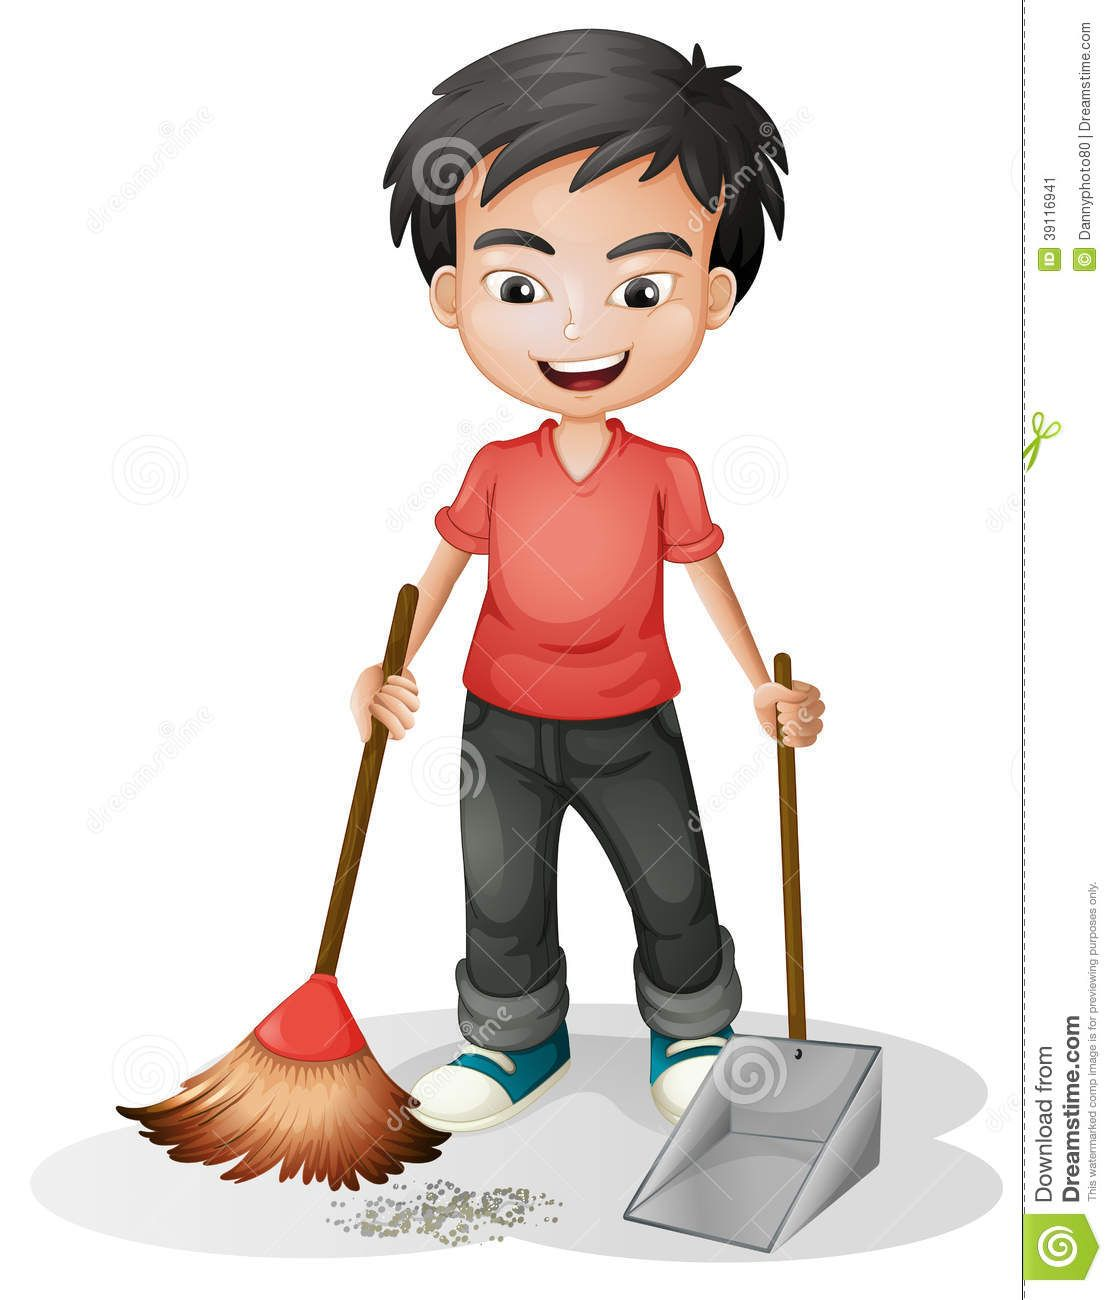 Clipart Of Boy Sweeping Mopping Floor Google Search Classroom Pictures Classroom Cartoon Islamic Cartoon